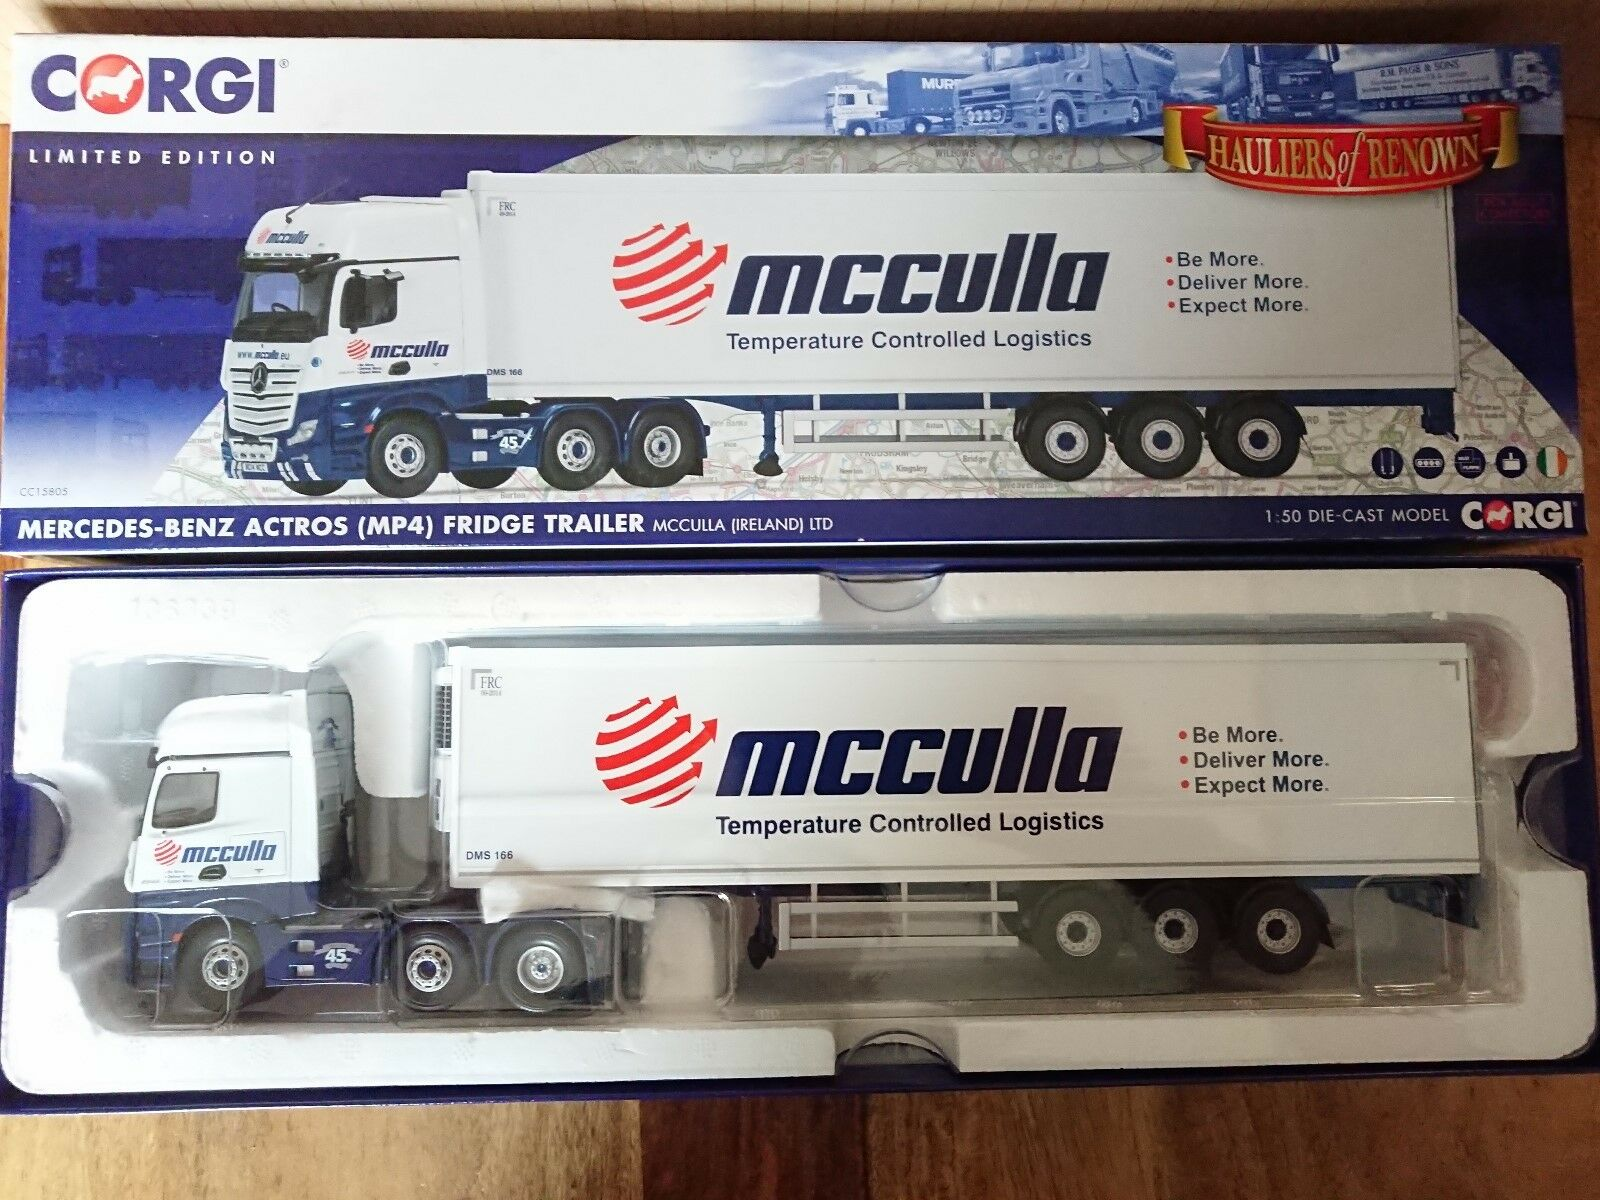 Corgi CC15805 Mercedes Actros MP4 Fridge Trailer MCCULLA Ltd Ed No. 482 of 800